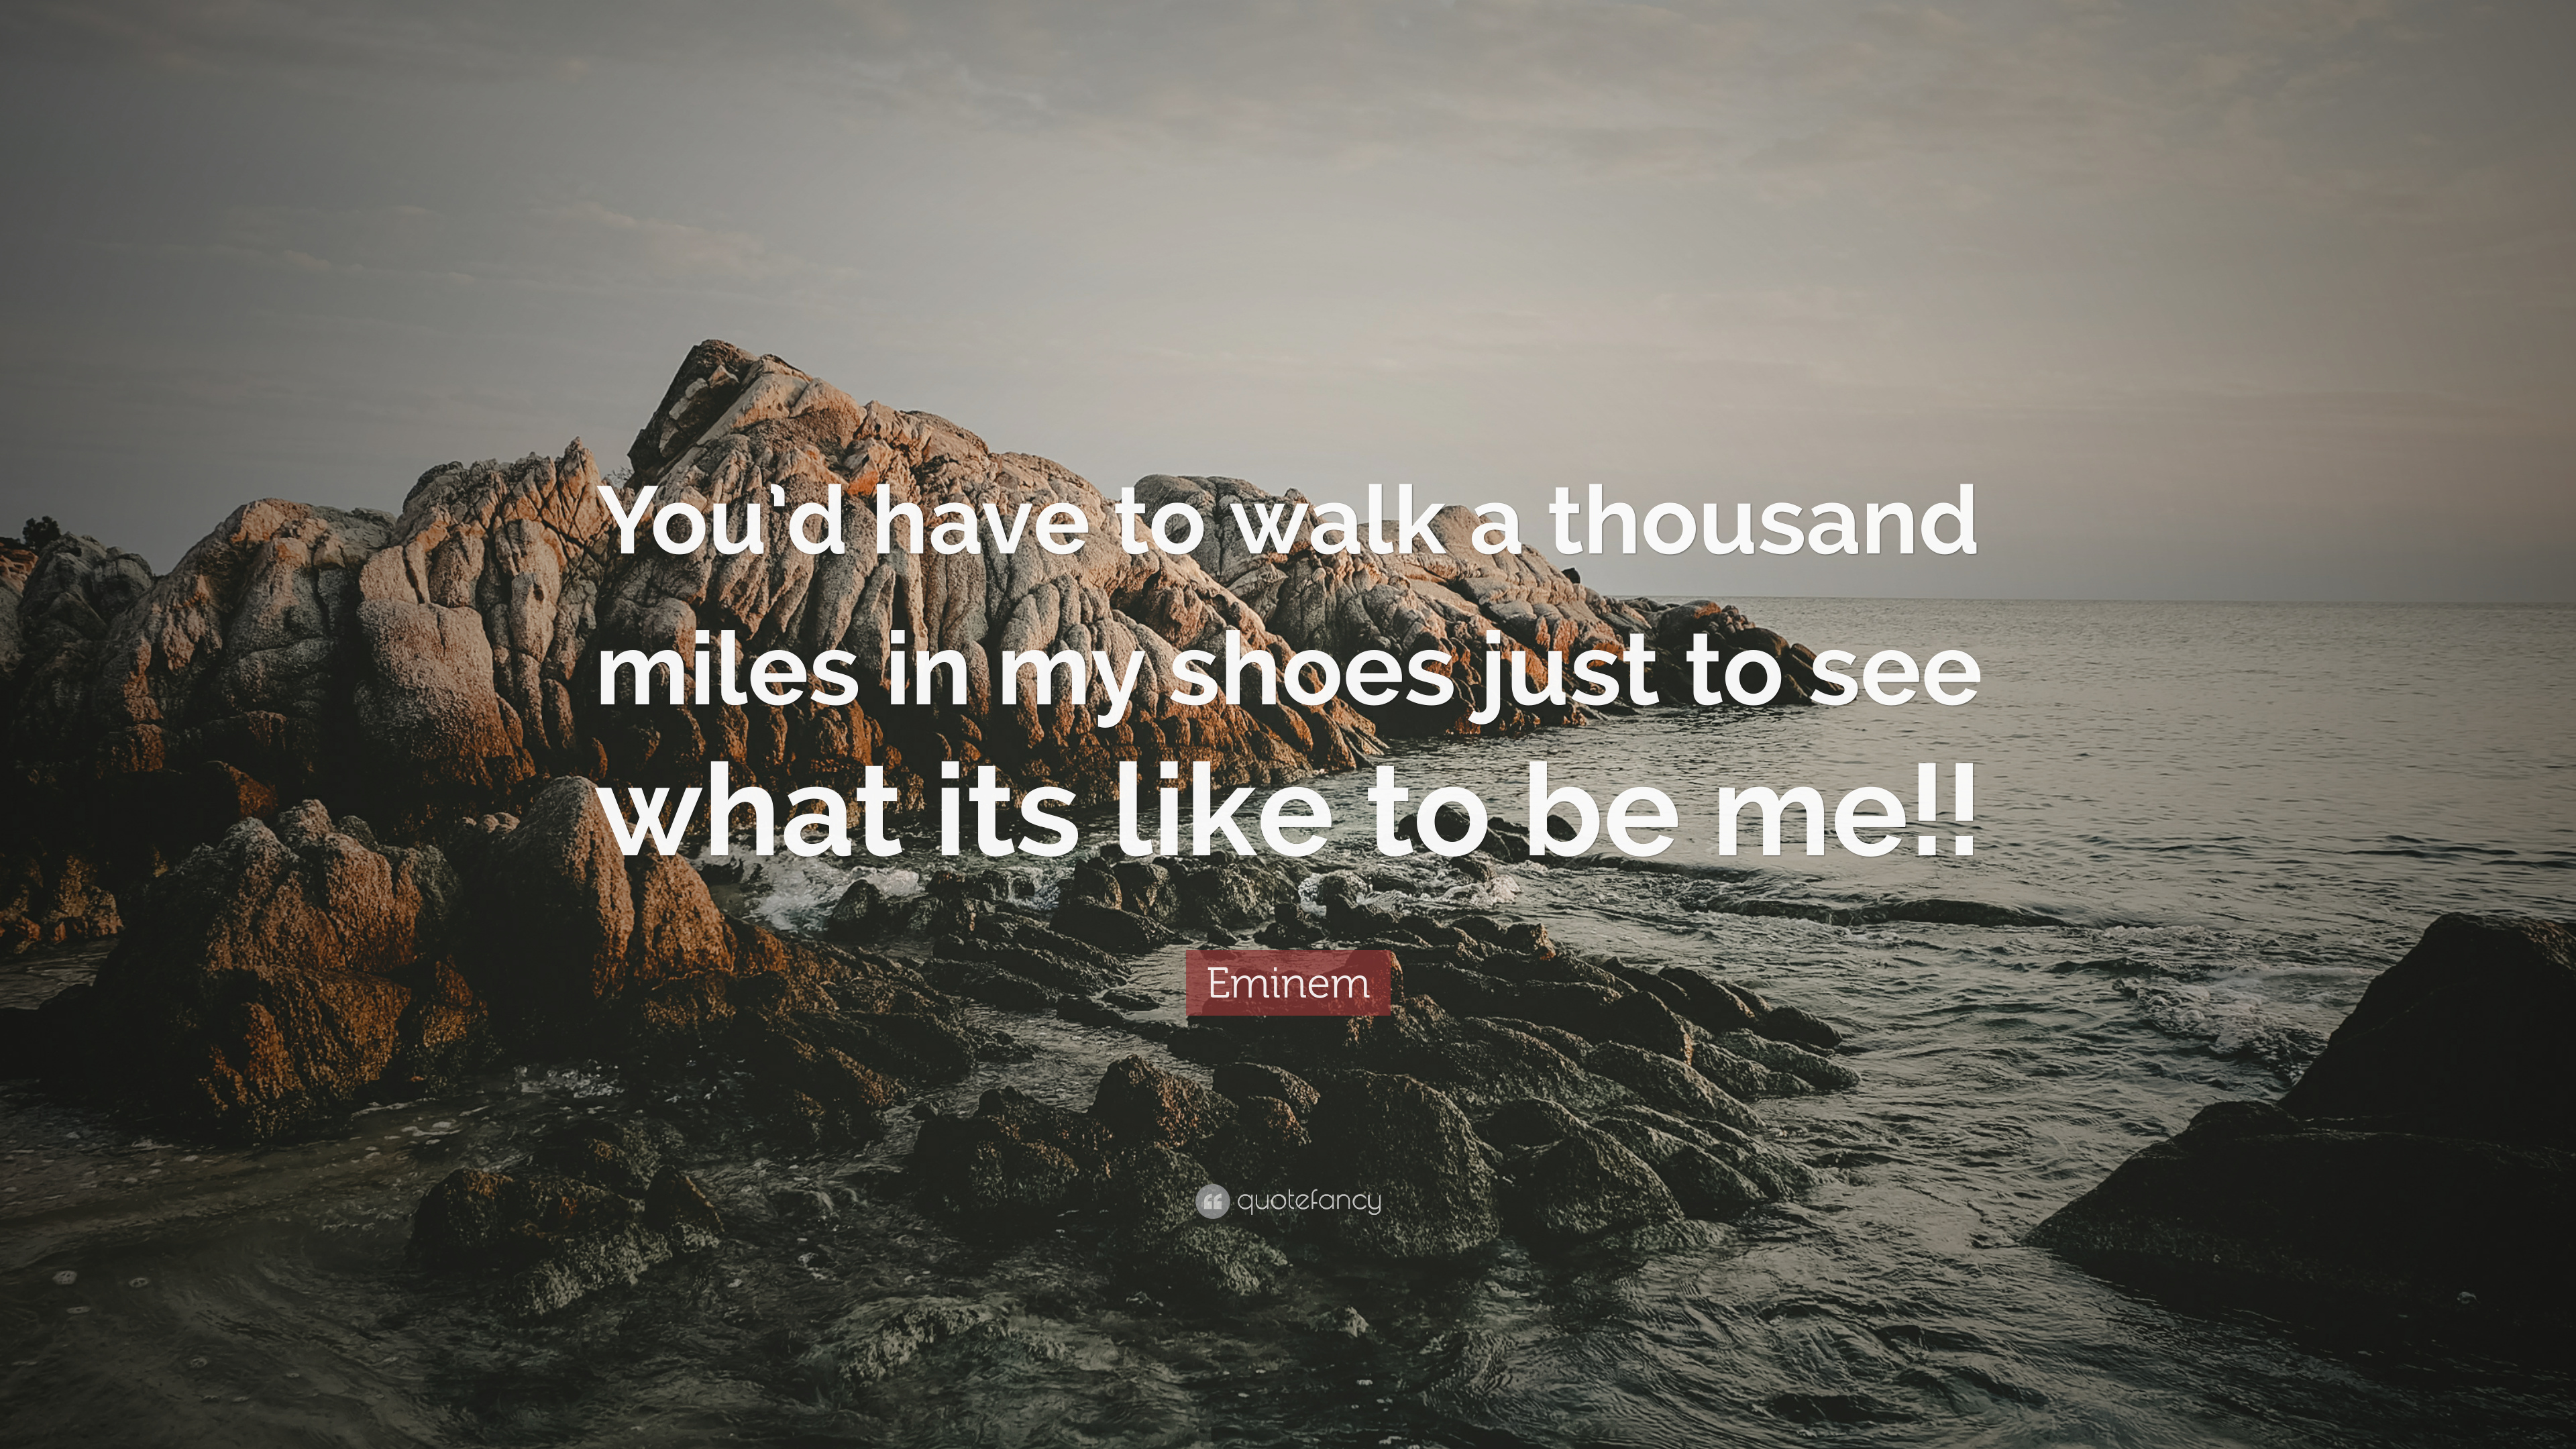 Eminem Quote Youd Have To Walk A Thousand Miles In My Shoes Just